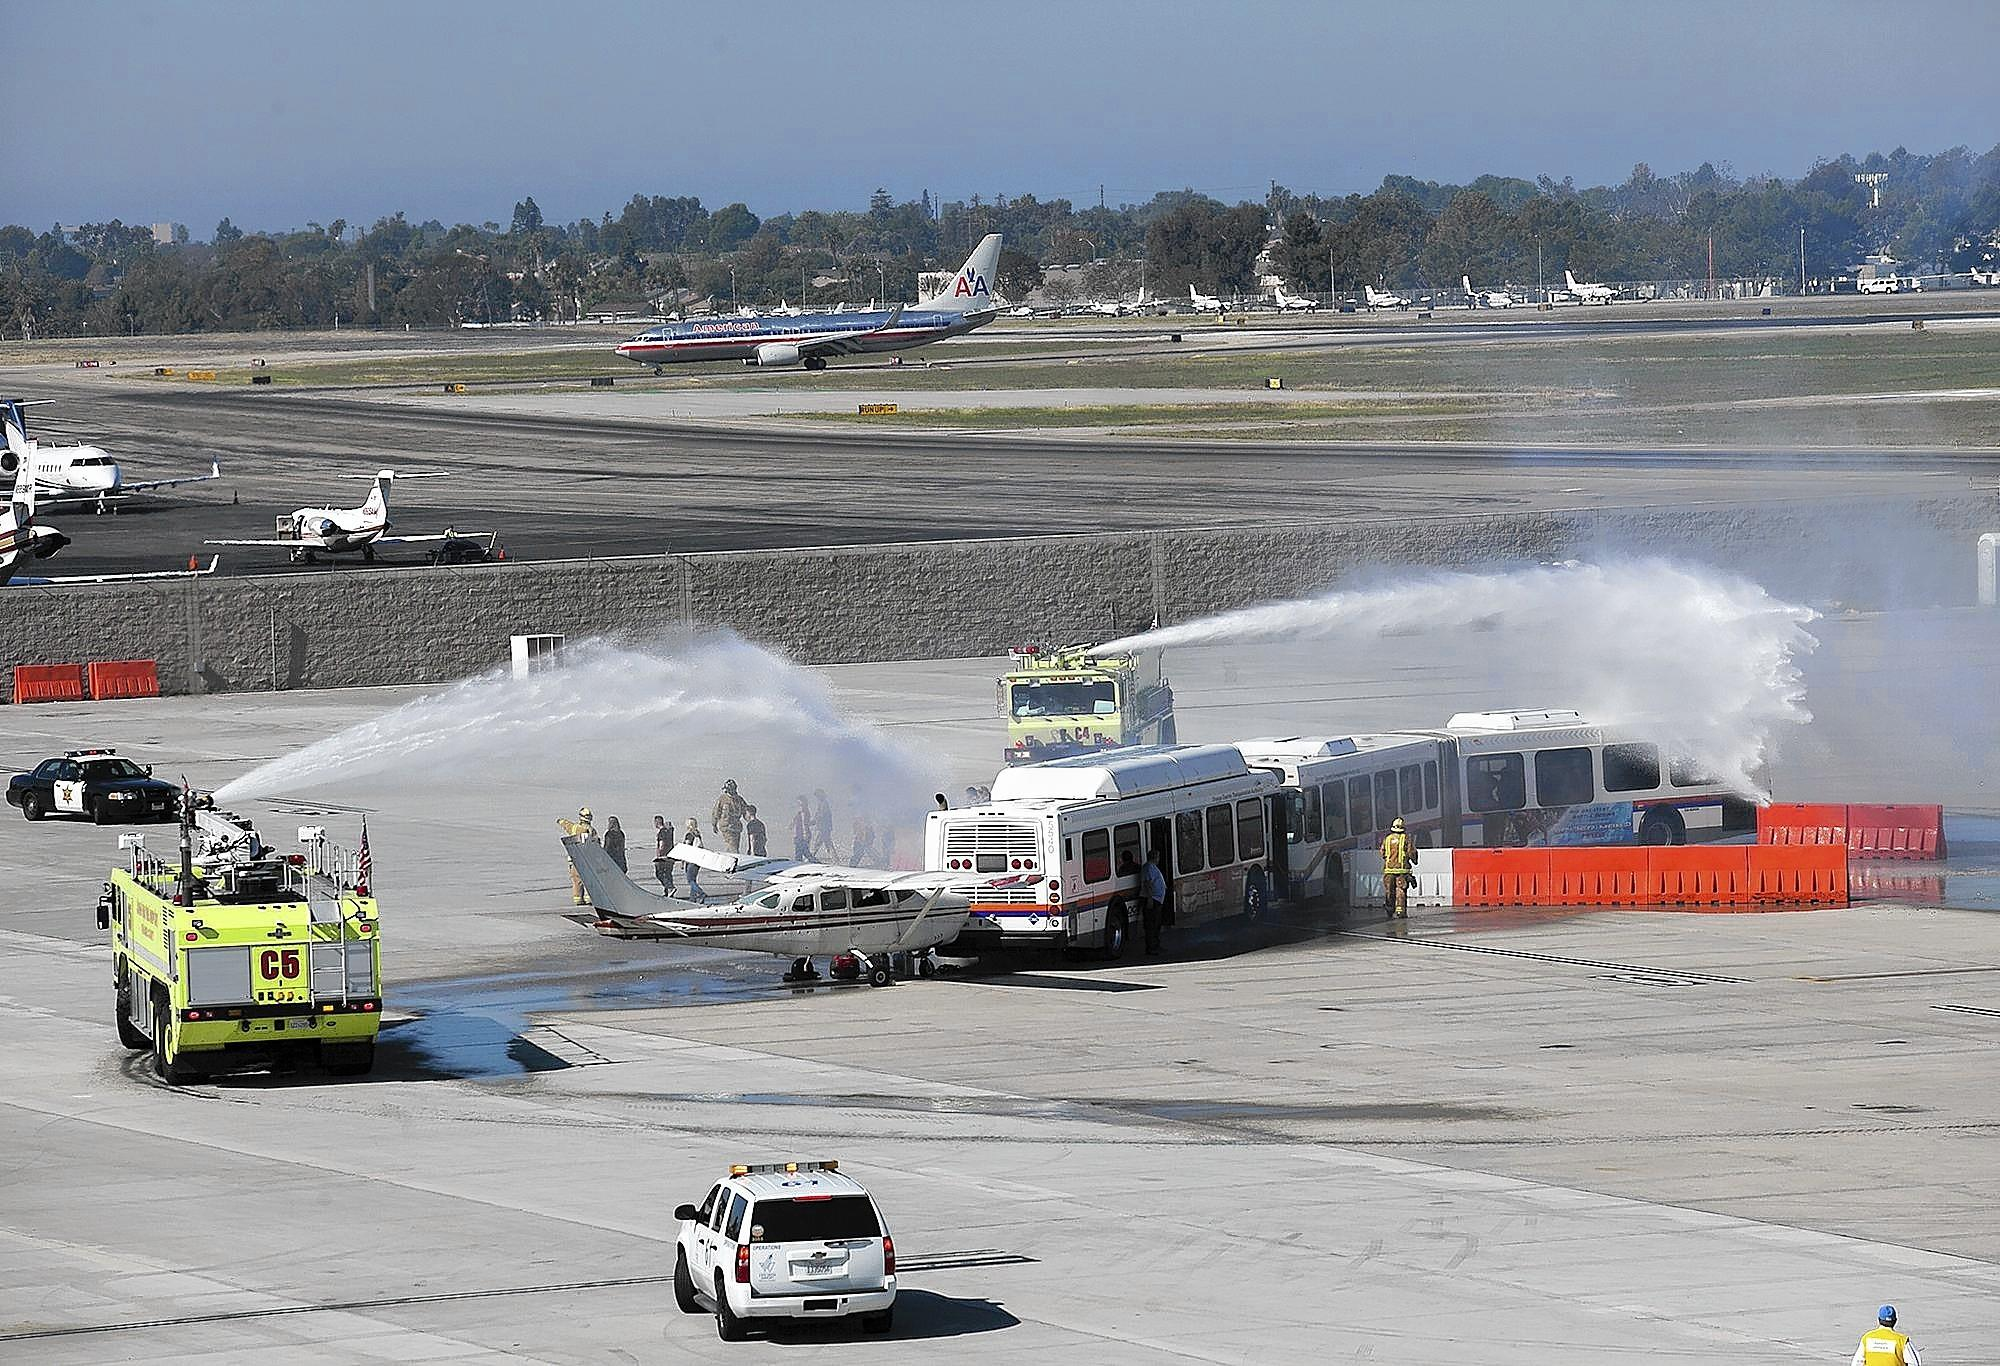 John Wayne Airport conducts a full-scale mass-casualty drill involving OCTA buses, simulating a Boeing 737, and a small Cessna on Friday.